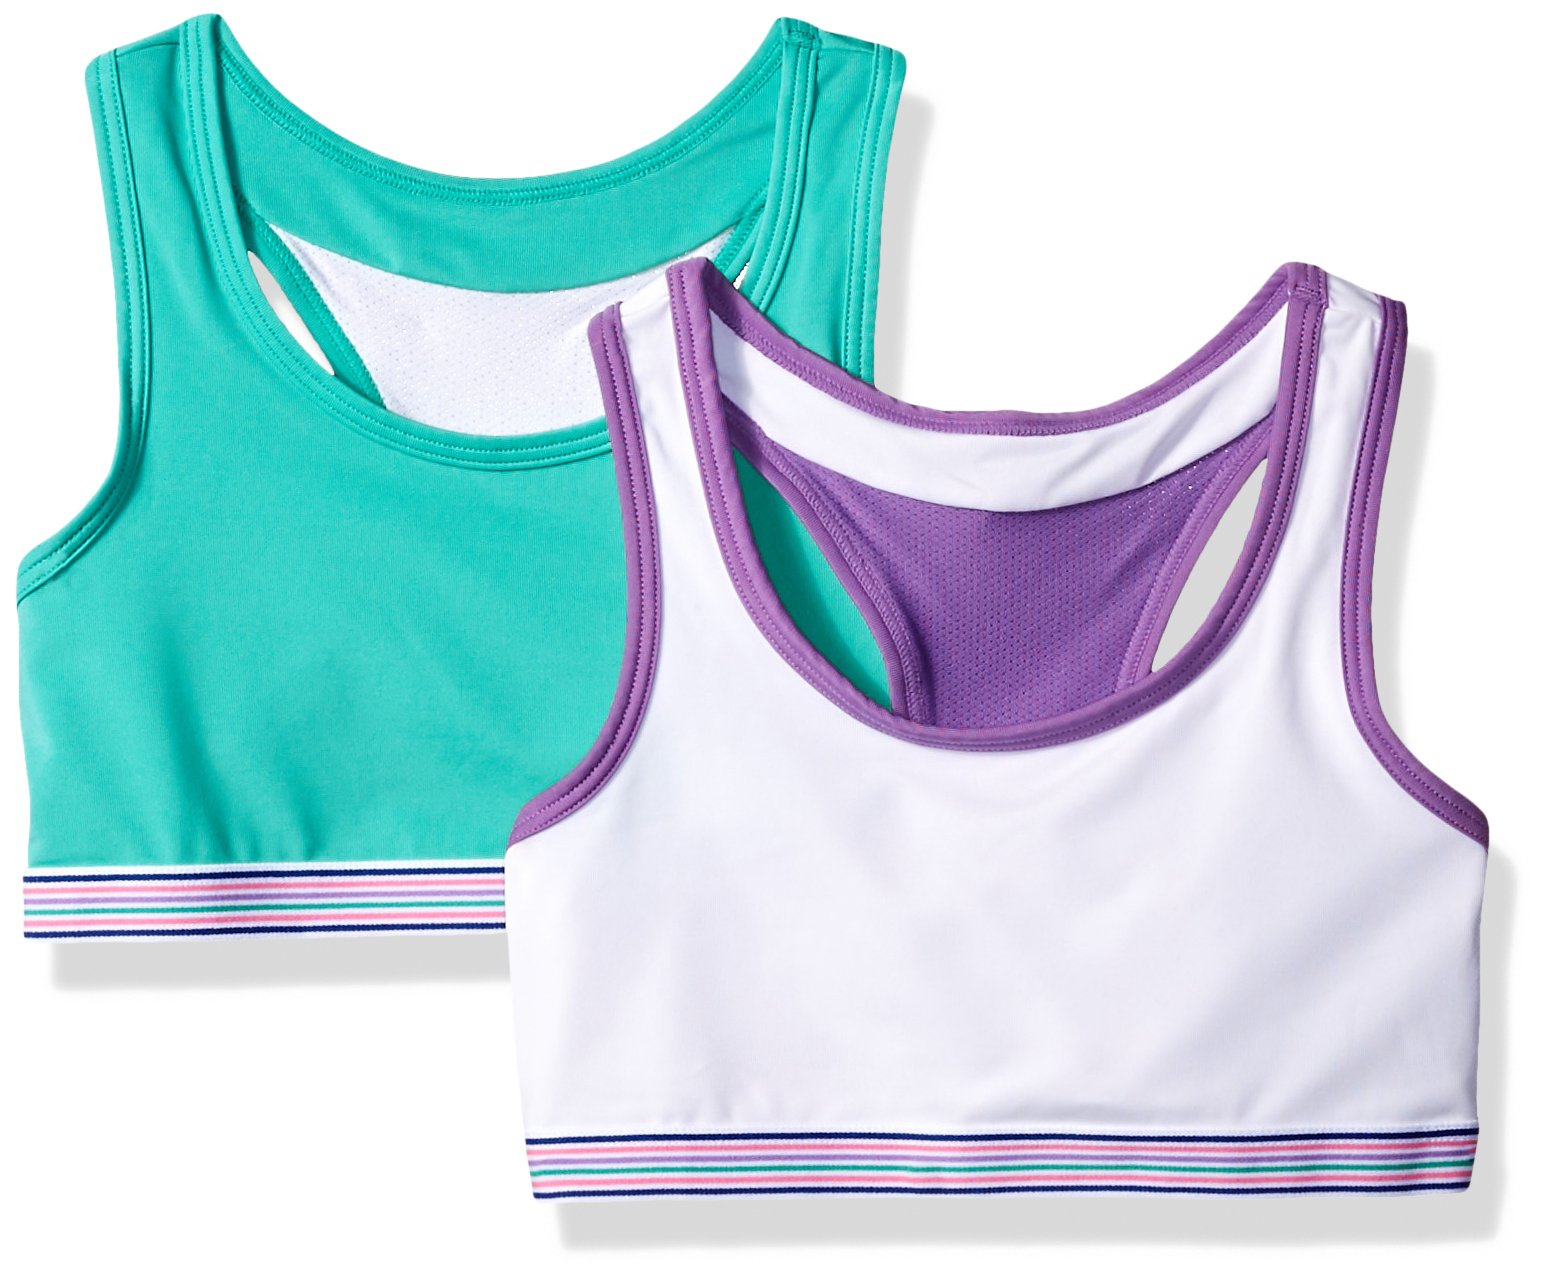 Hanes Big Girls' Comfort Flex Fit Wide Strap Seamless Racerback 2-Pack, True Teal with White/White with Spring Purple, Small